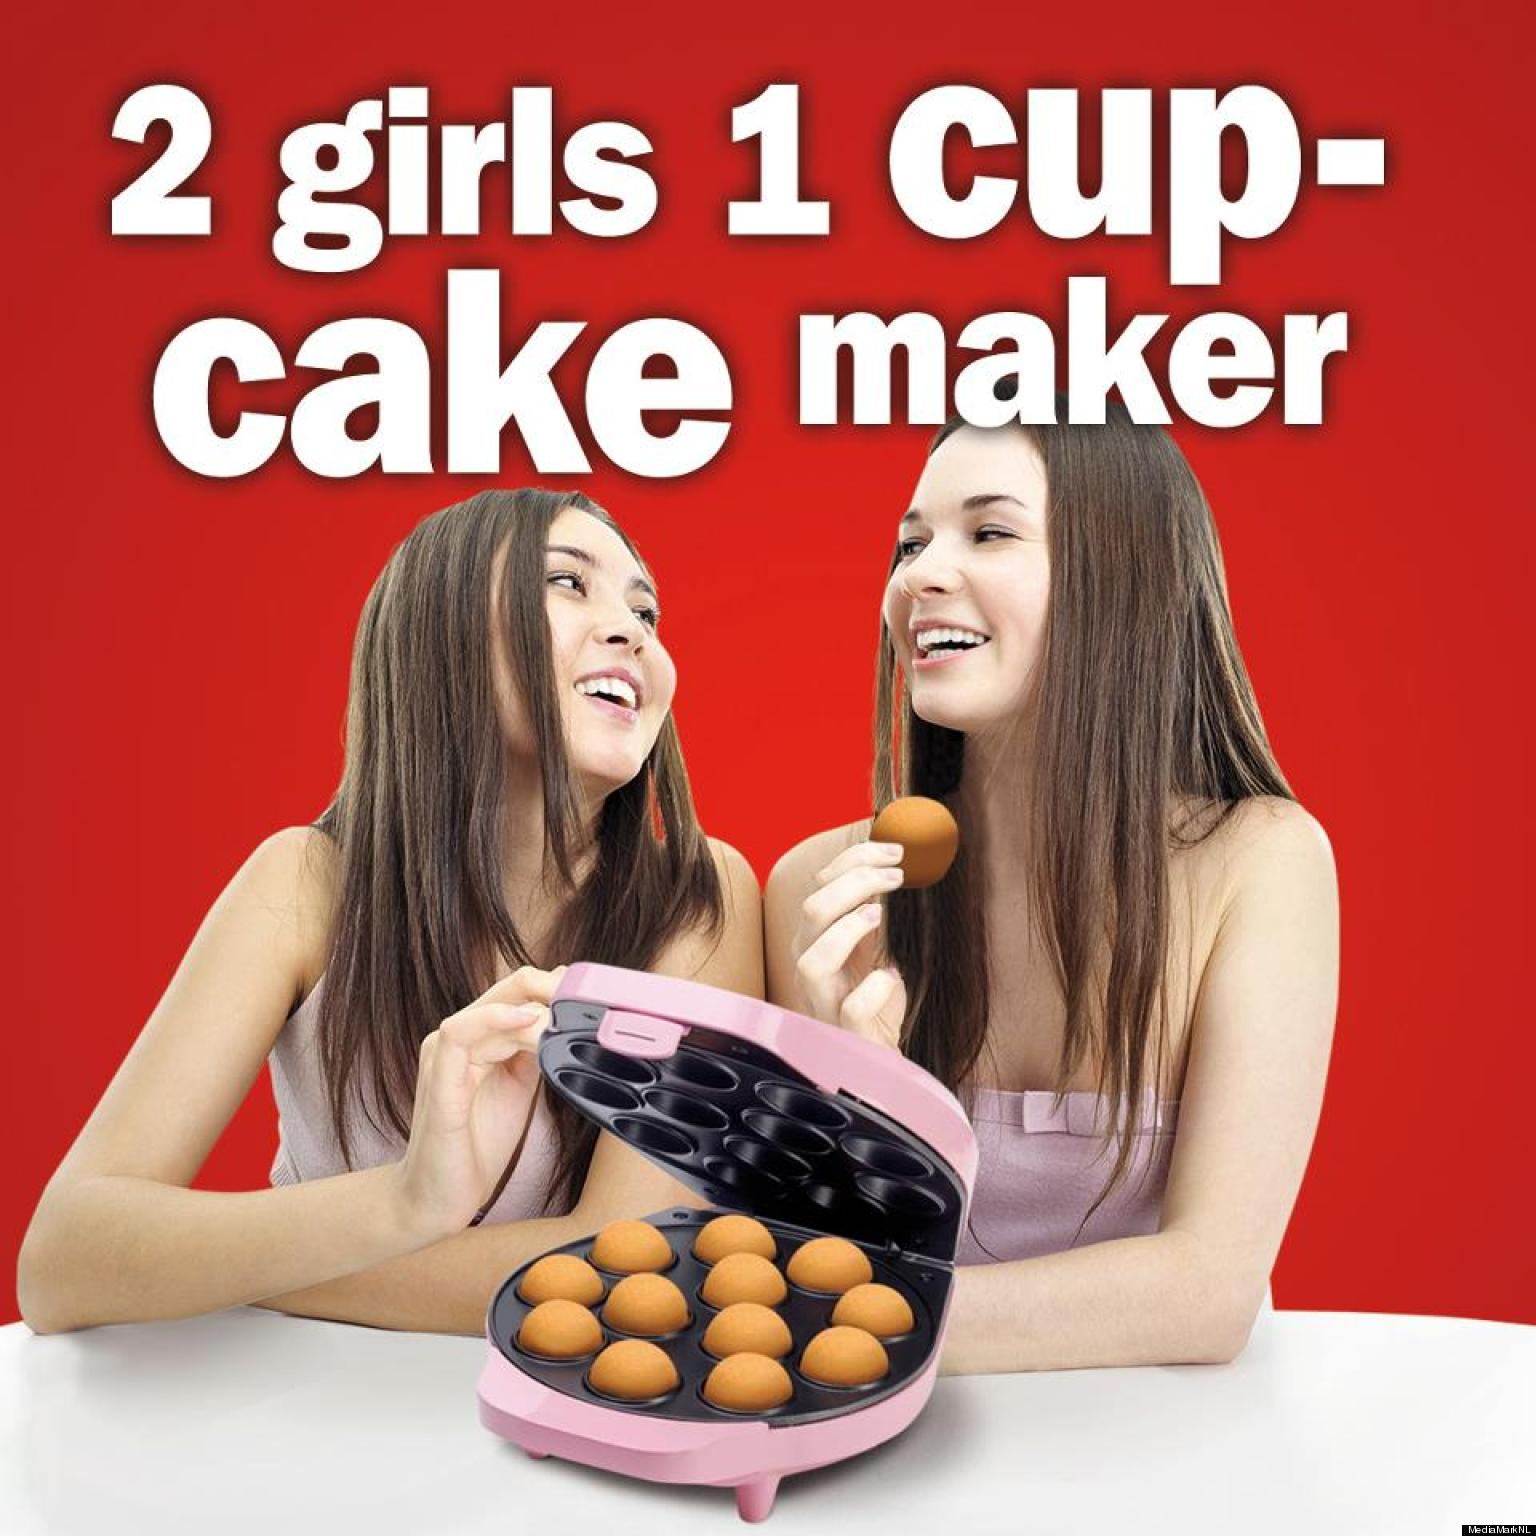 Two girls and a cup